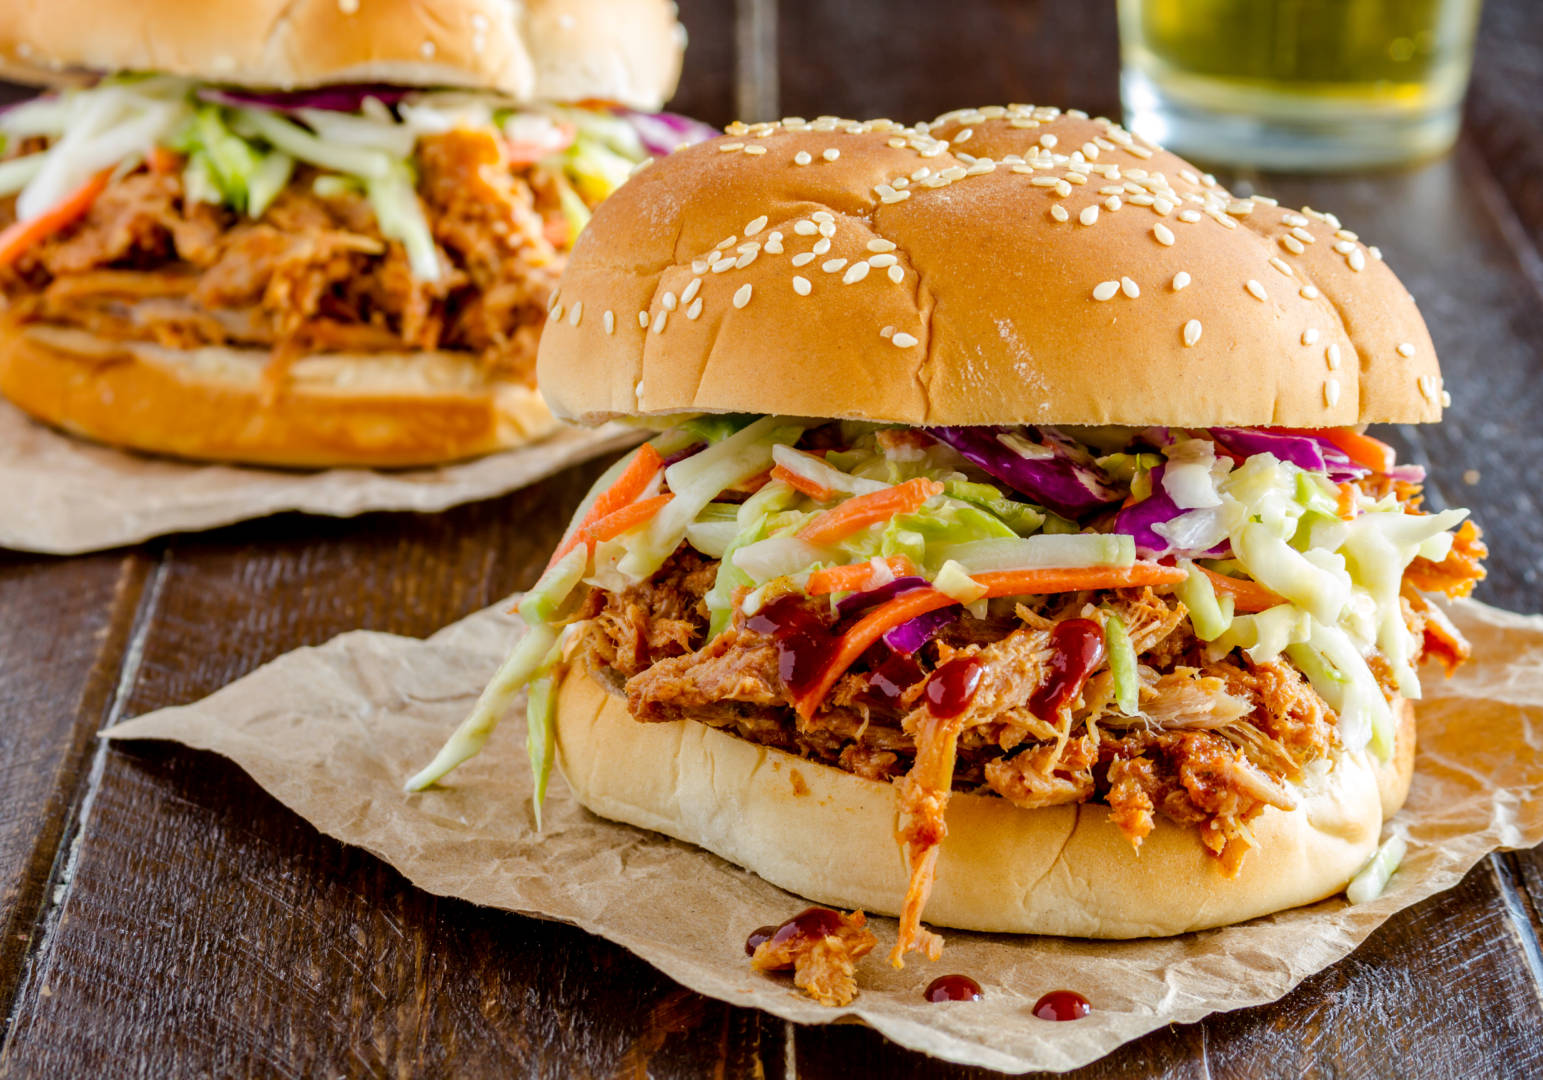 Pork sandwich with BBQ Sauce and coleslaw